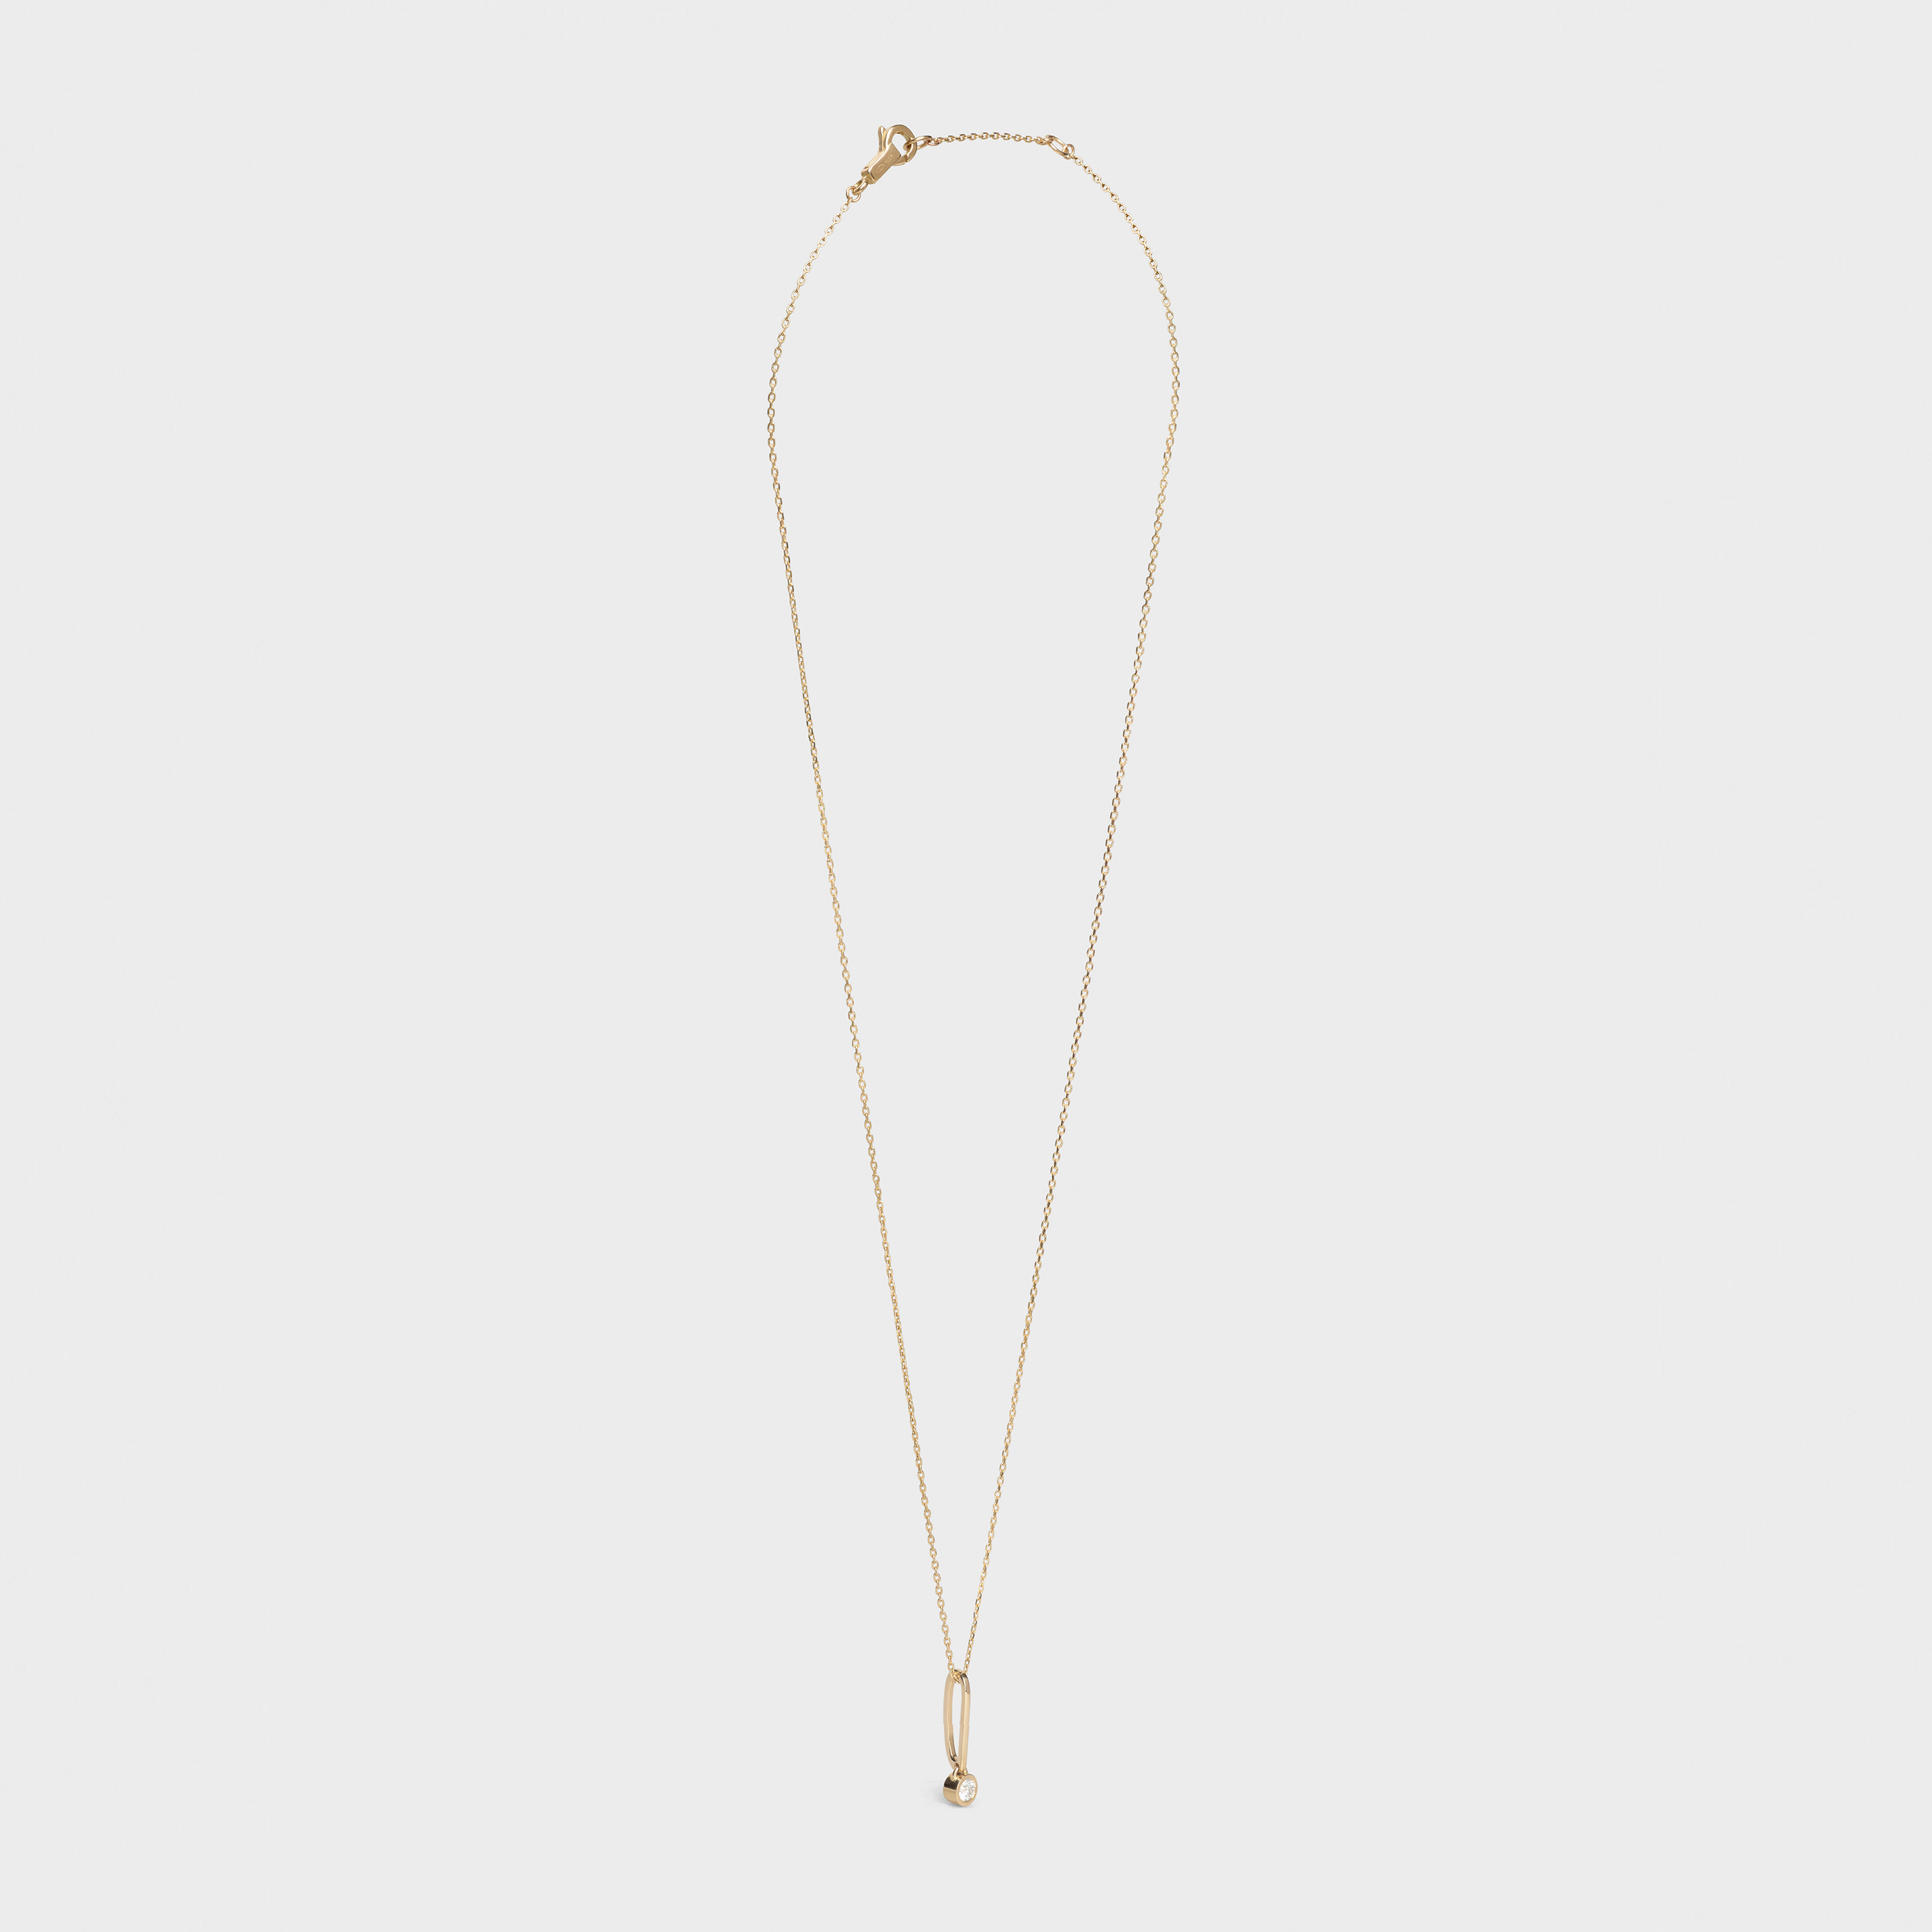 Celine Sentimental Brilliant Necklace in Yellow Gold and White Diamond | CELINE